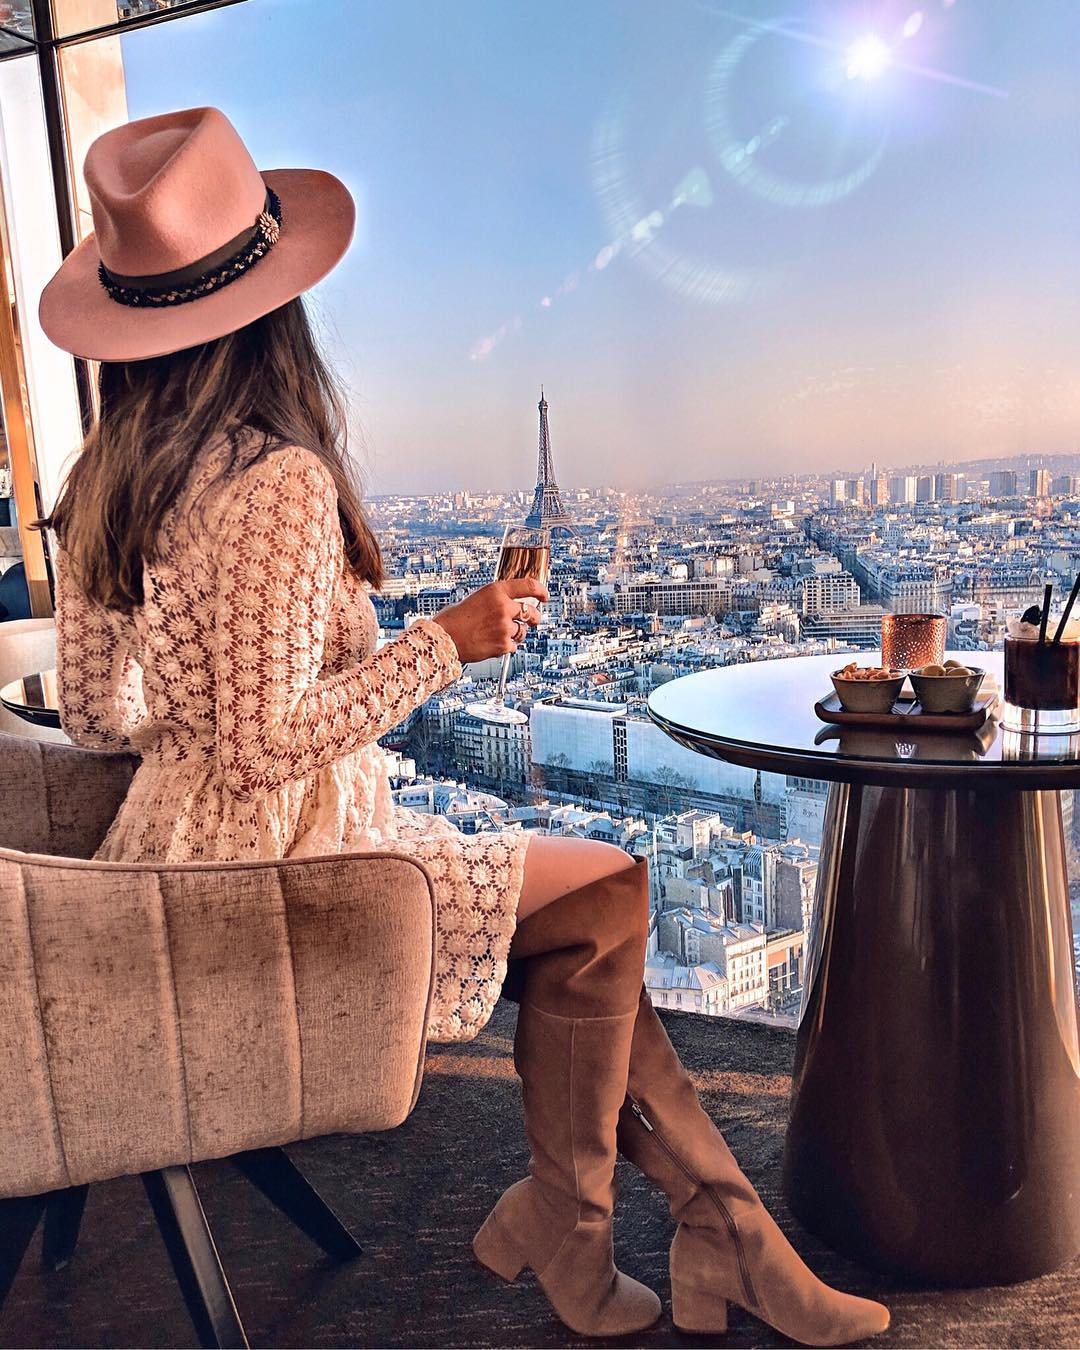 Best bars in Paris to see the Eiffel Tower